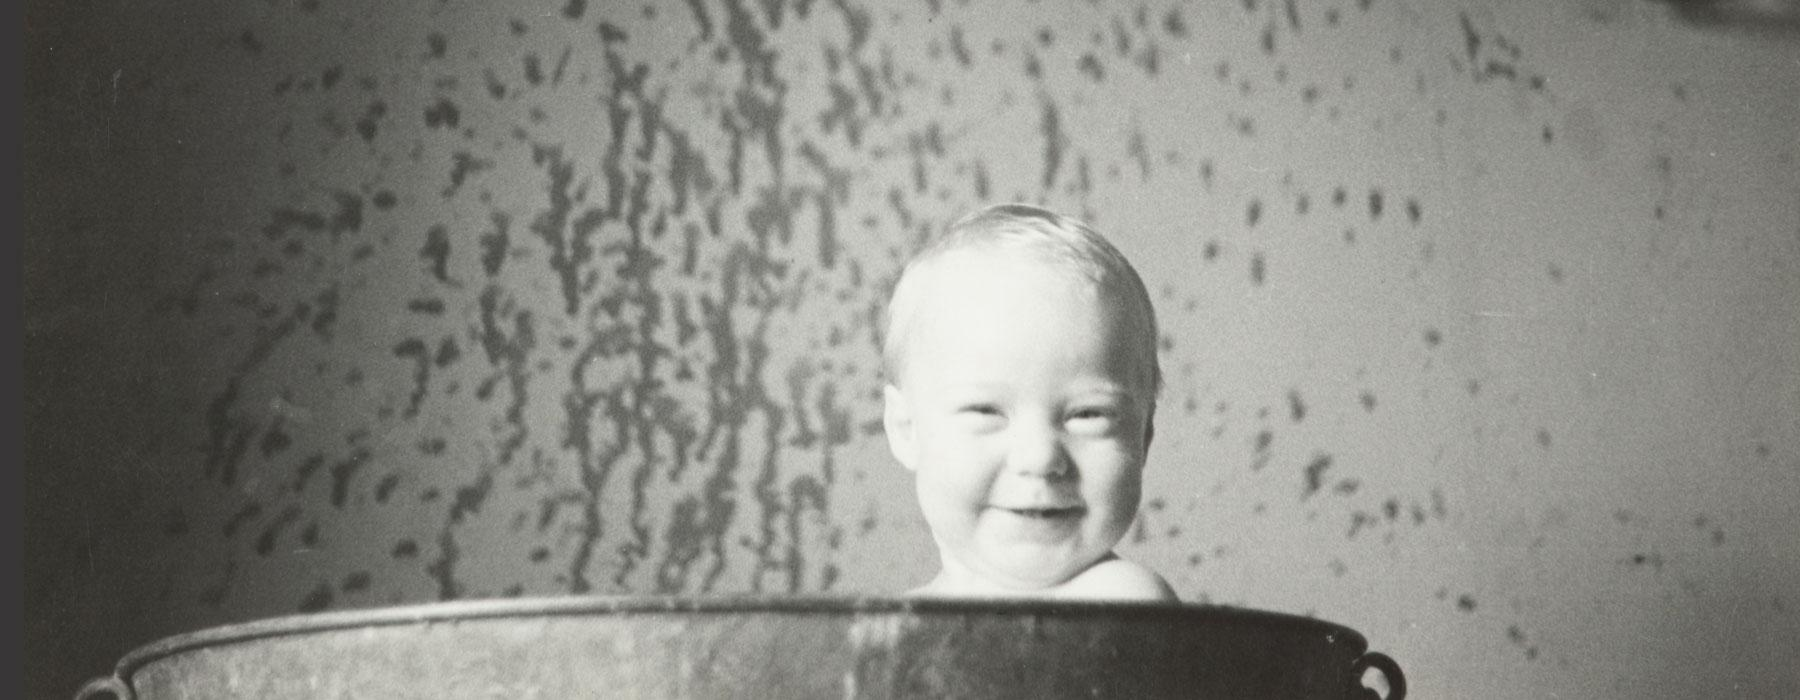 A baby grins, he's poking his head above a bathtub. There's water splashes on the walls.